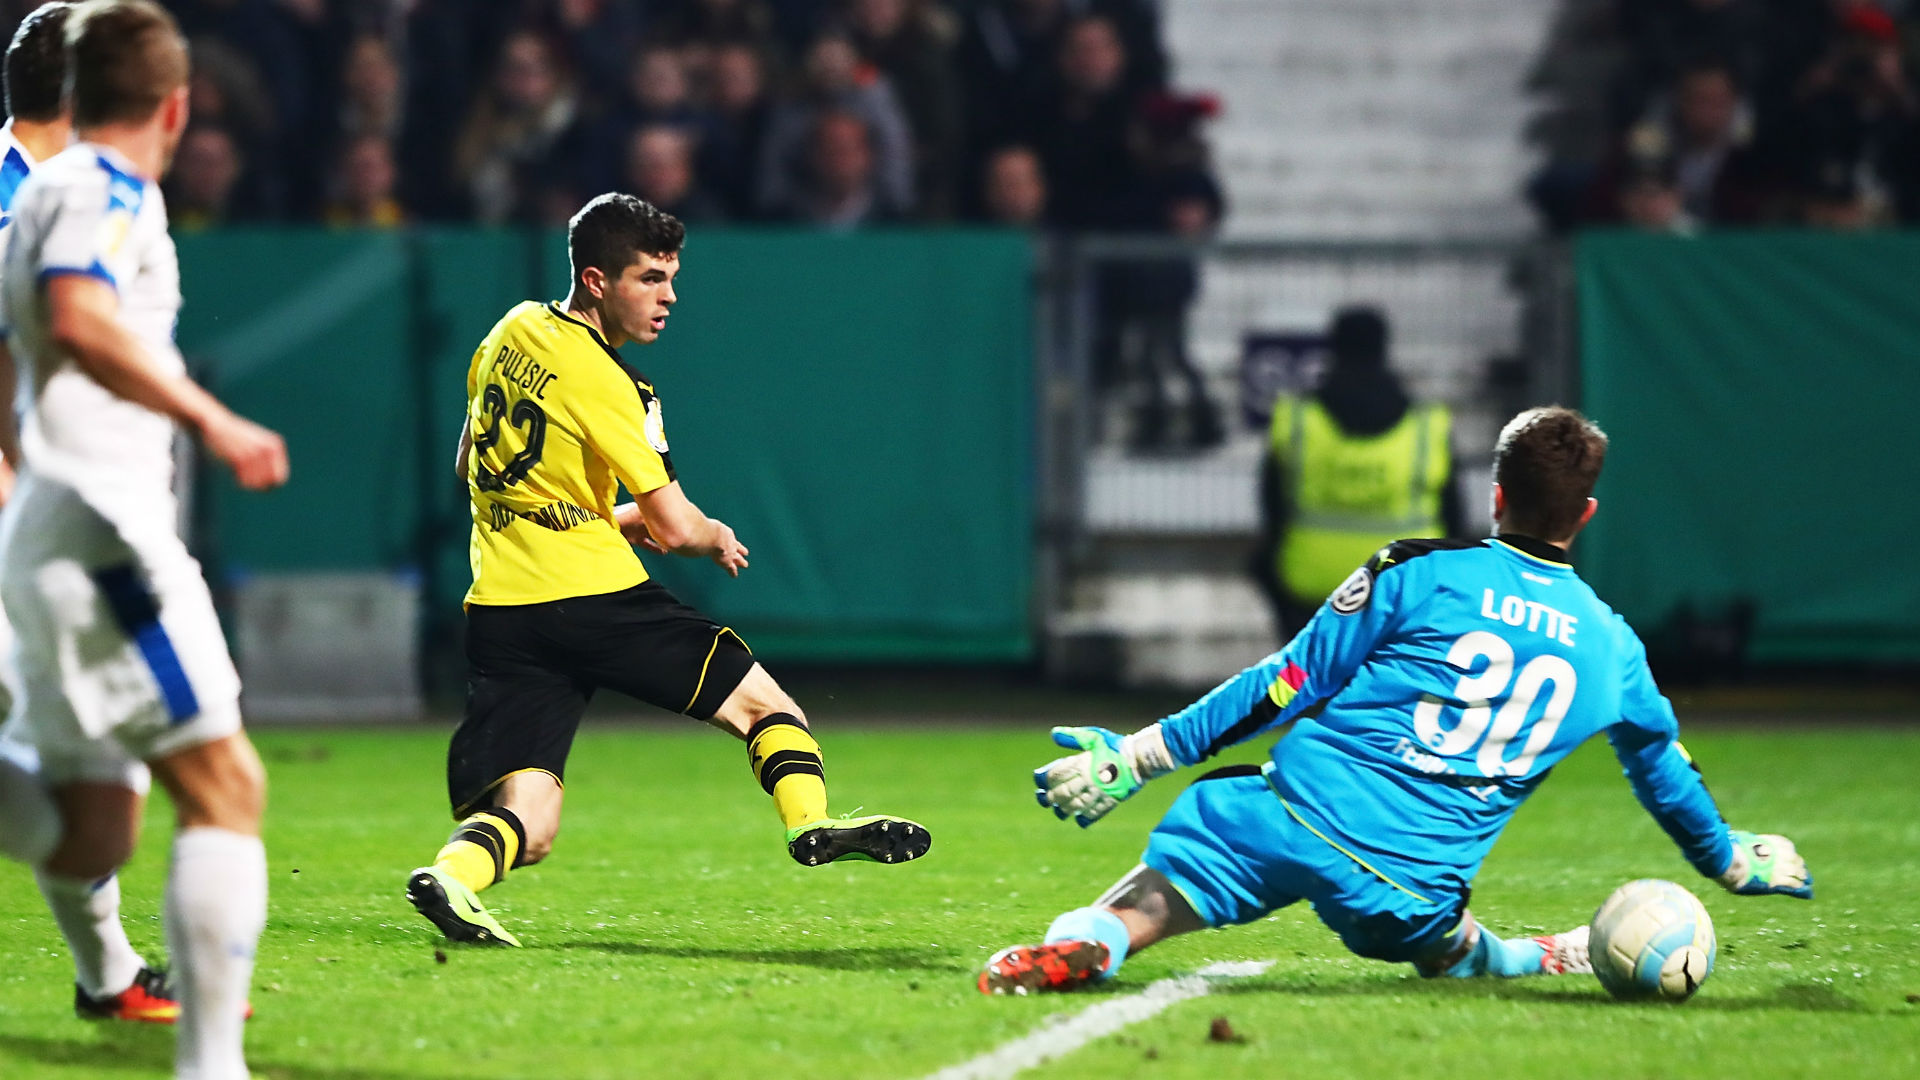 Dortmund beats Lotte for German Cup semifinal against Bayern